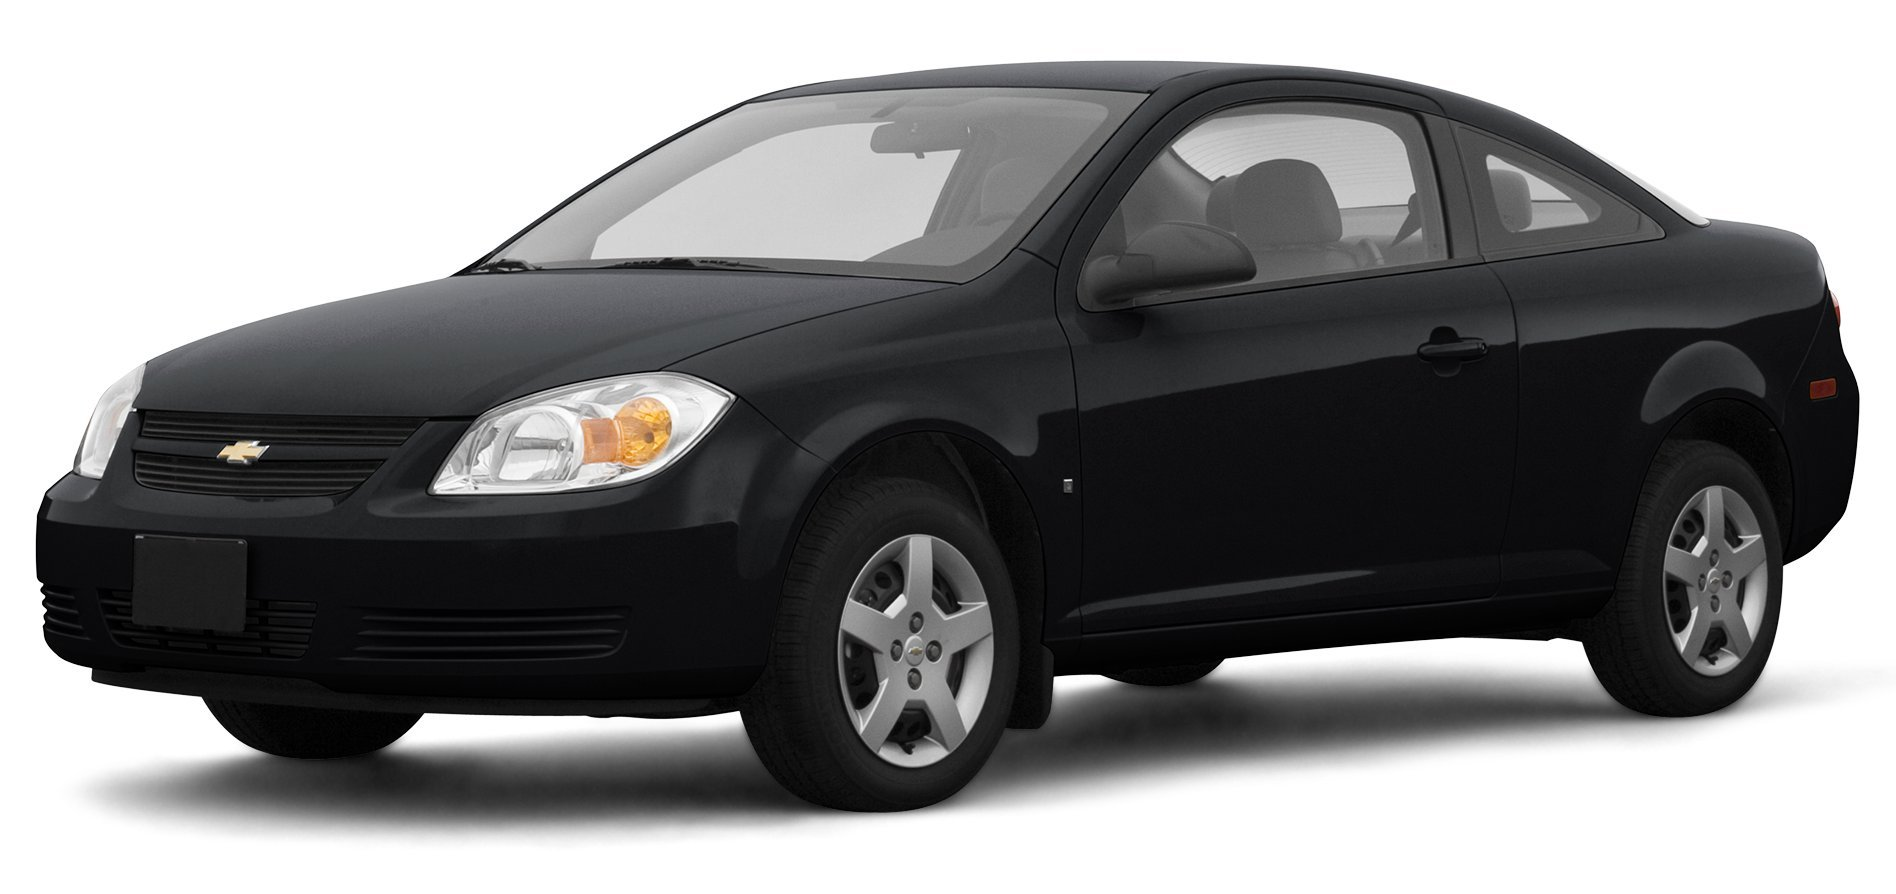 2007 chevrolet cobalt reviews images and. Black Bedroom Furniture Sets. Home Design Ideas